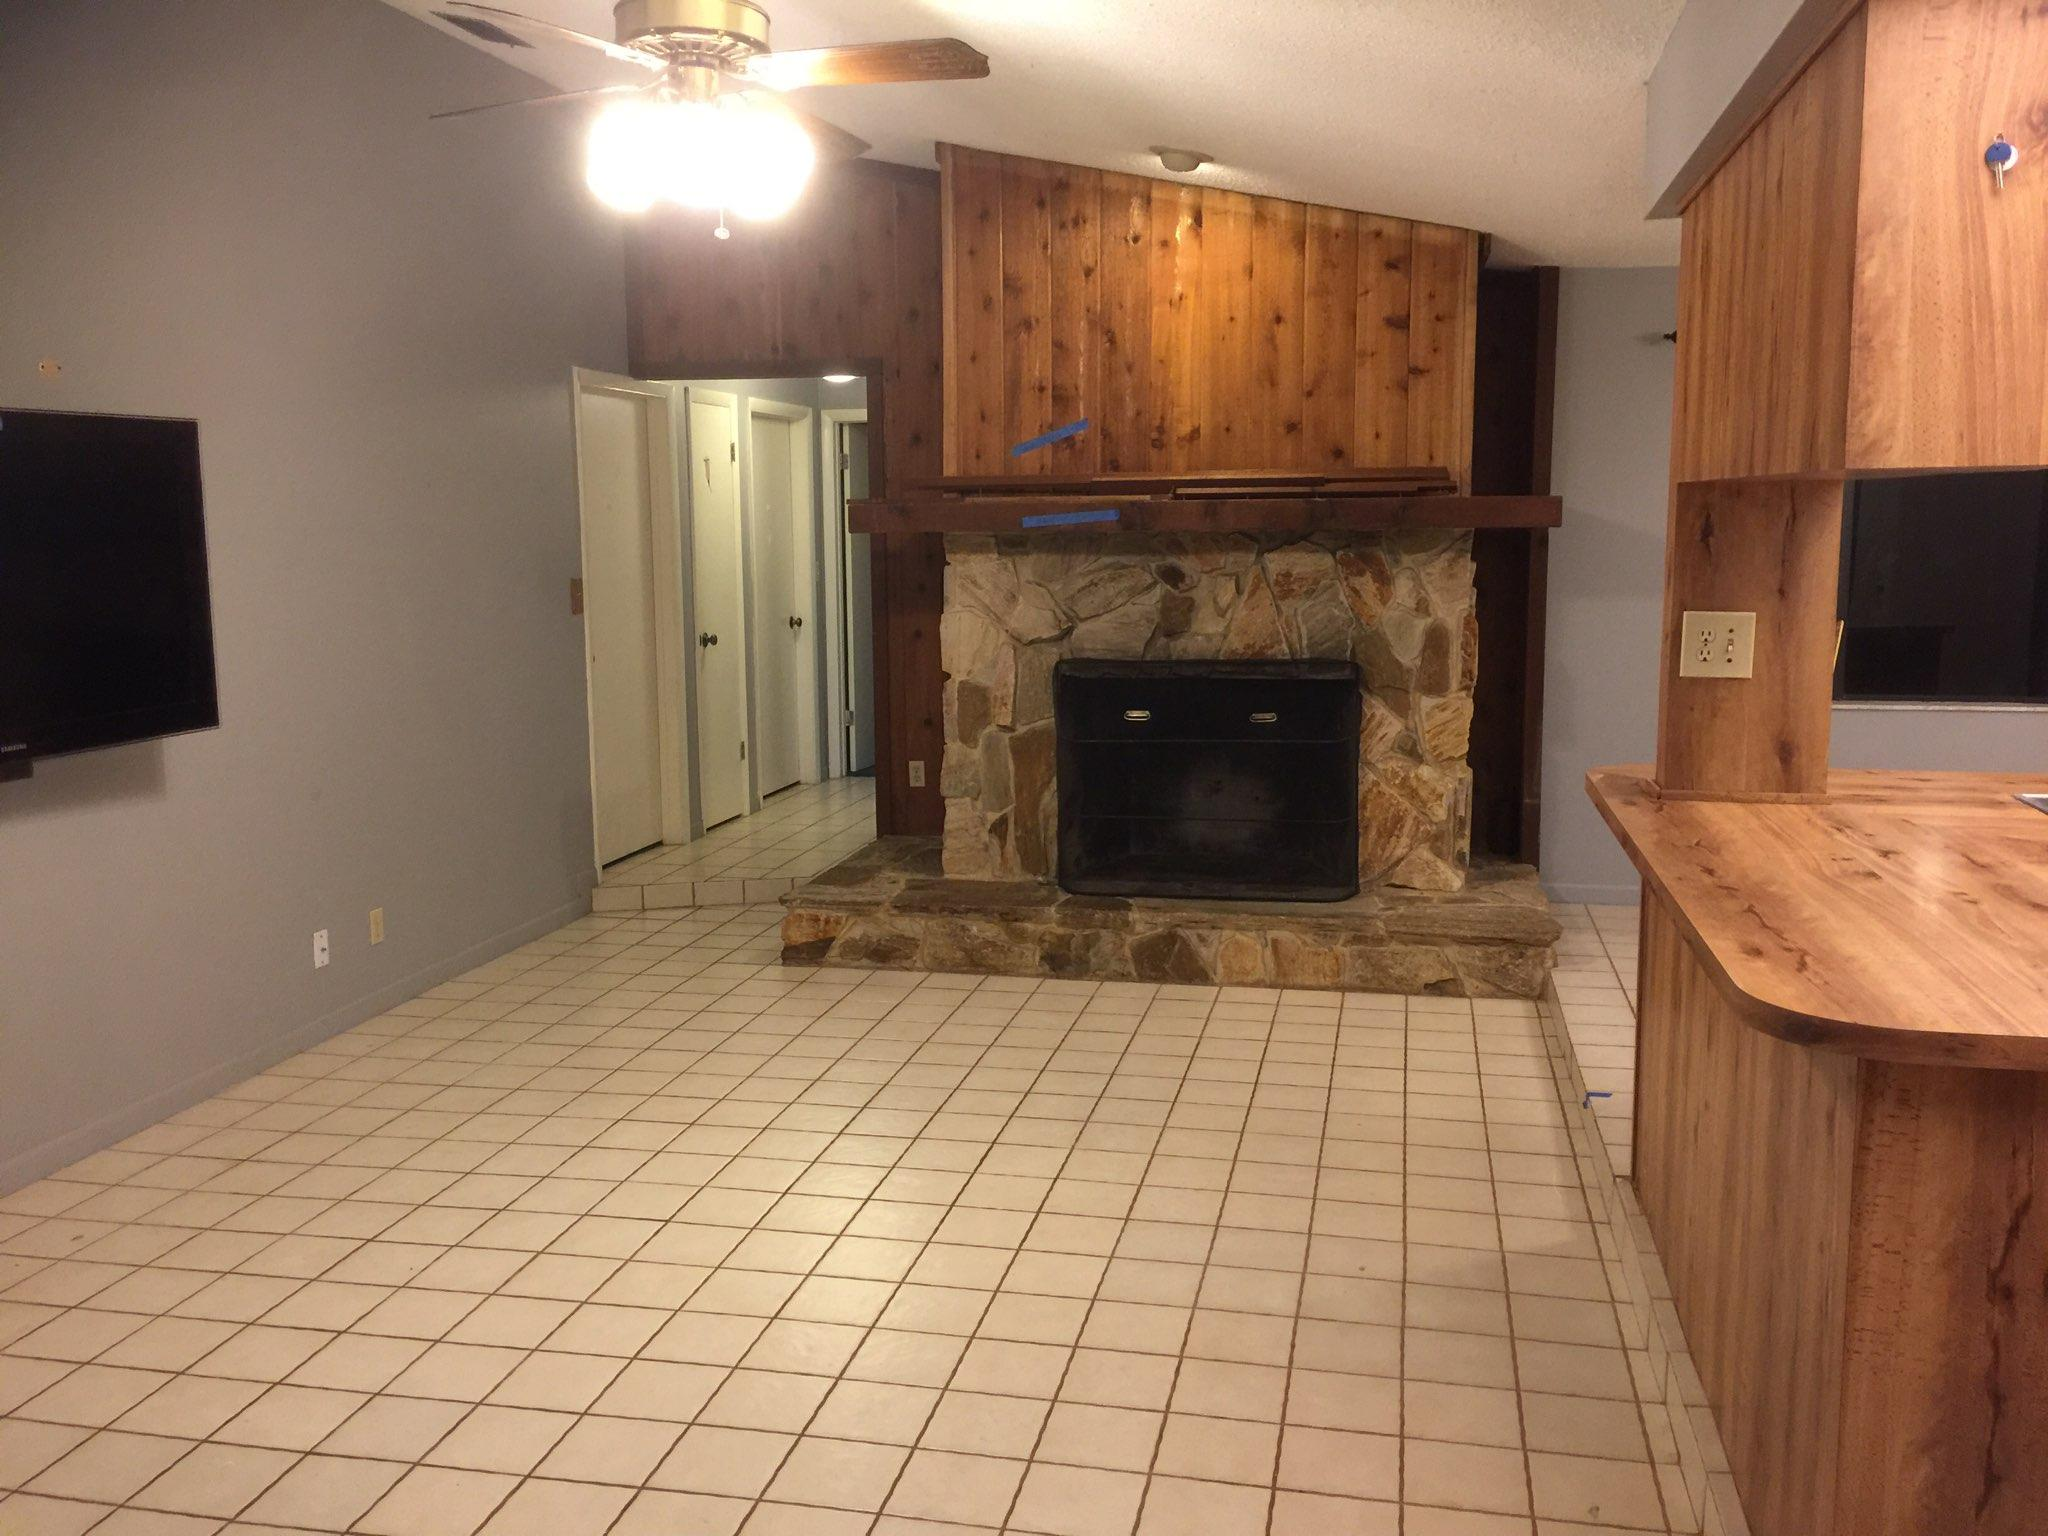 Hathaway Home Remodel - Before Picture 1